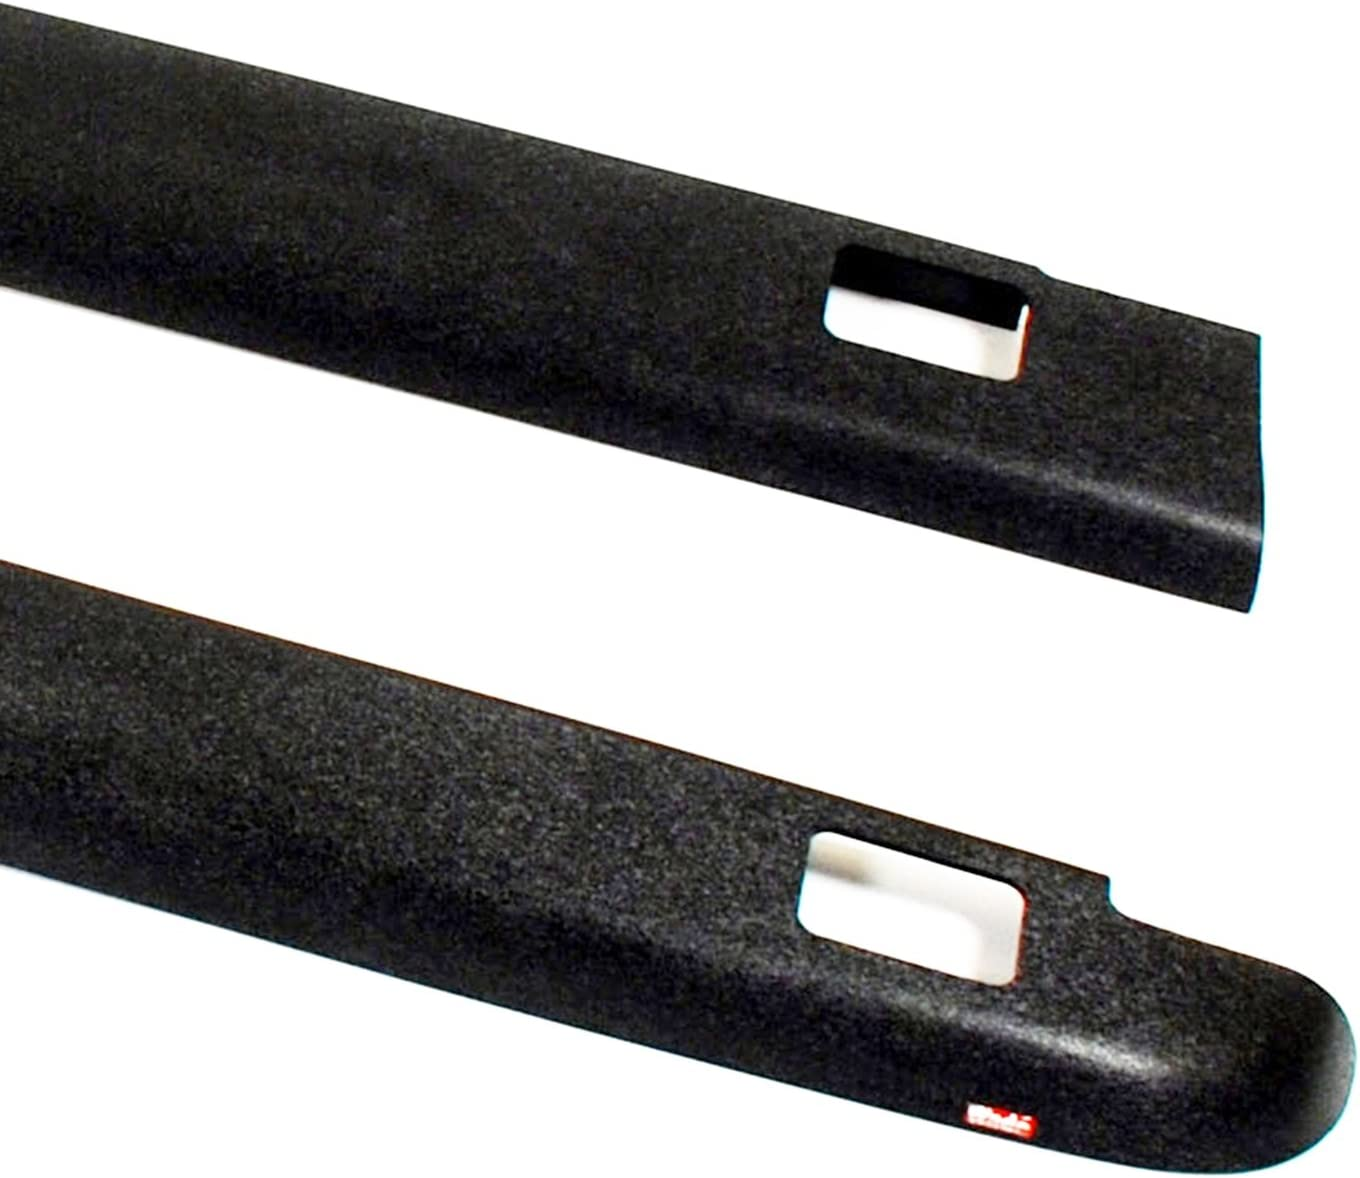 Set of 2 Wade 72-41115 Truck Bed Rail Caps Black Smooth Finish with Stake Holes for 2007-2014 GMC Sierra 1500 Crew Cab Extended Cab with 5.8ft Bed